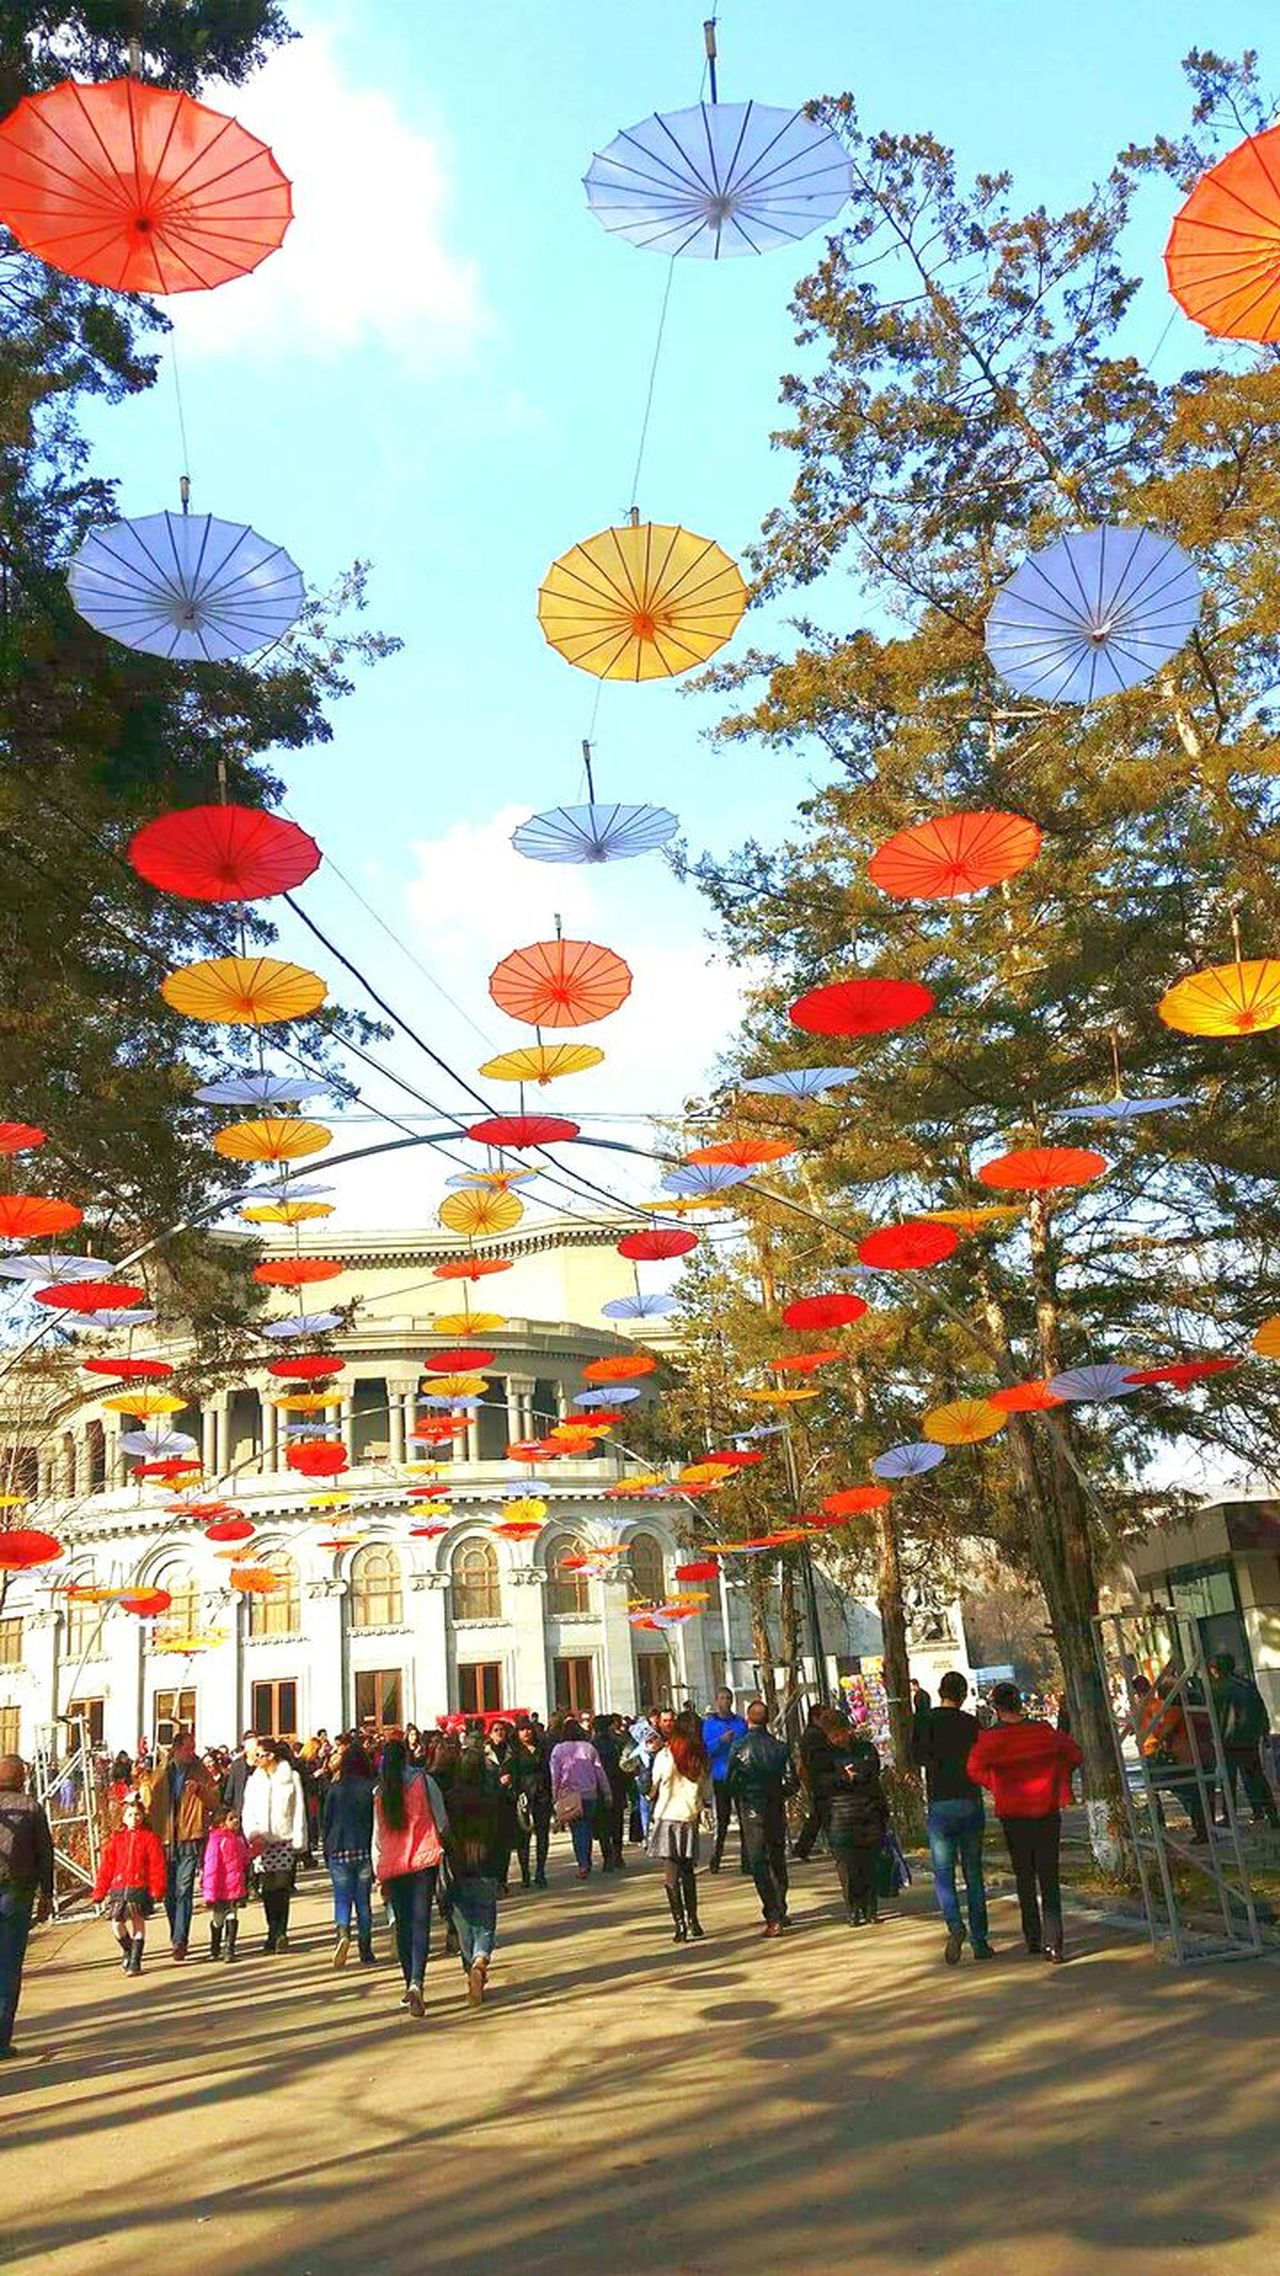 Built Structure Architecture Outdoors❤ Celebration March 8th!!!!!. Coolday 💟 Womenday 😍😍 Opera And Ballet Theatre Nice Atmosphere Taking Photos ❤ 😊😊😊 Smile And Be Happy😇 Colorful Umbrellas ☂⛱⛱🌈